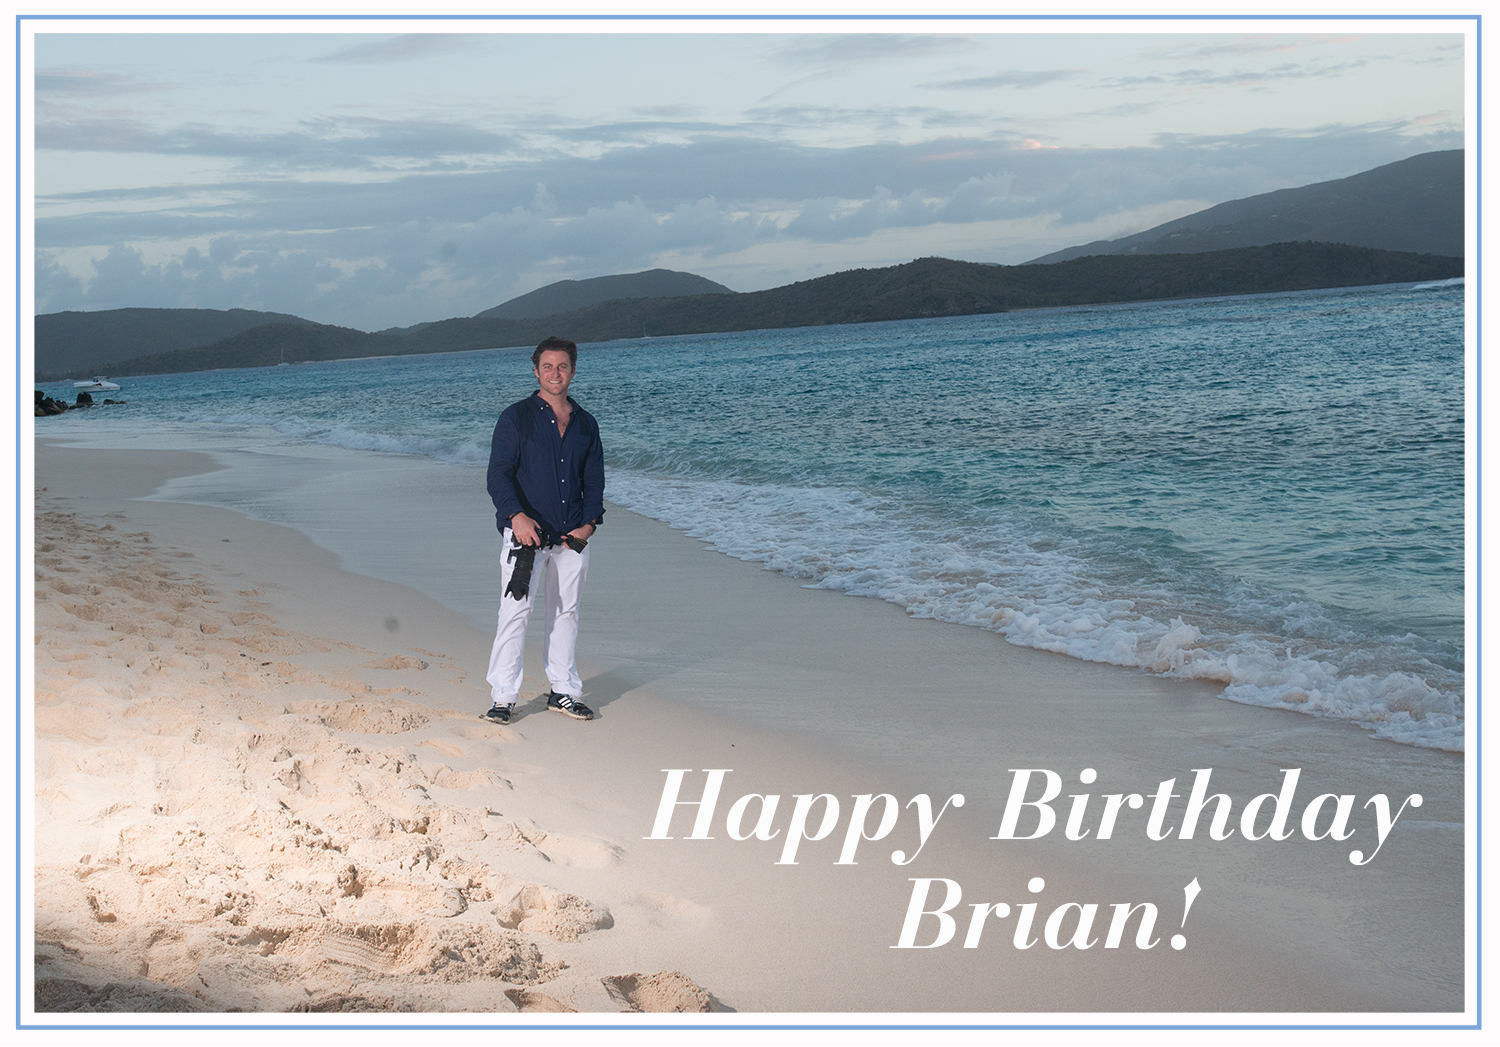 Happy Birthday Brian!